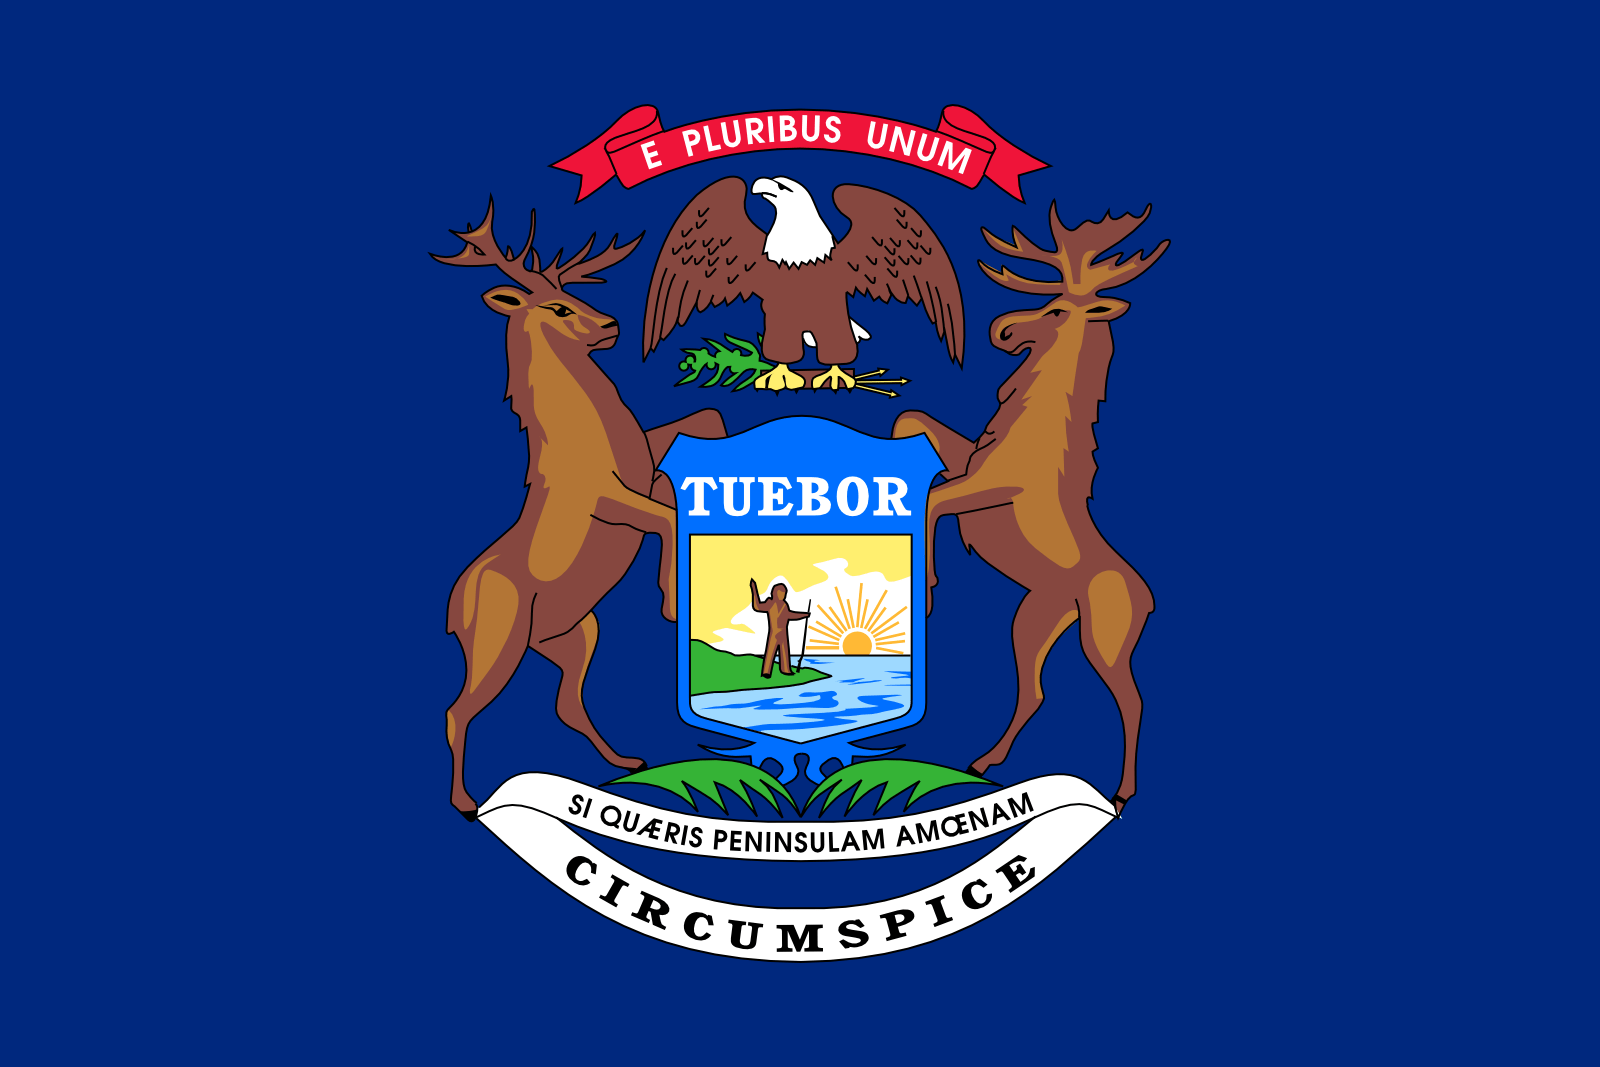 Who is the patron saint of Michigan?